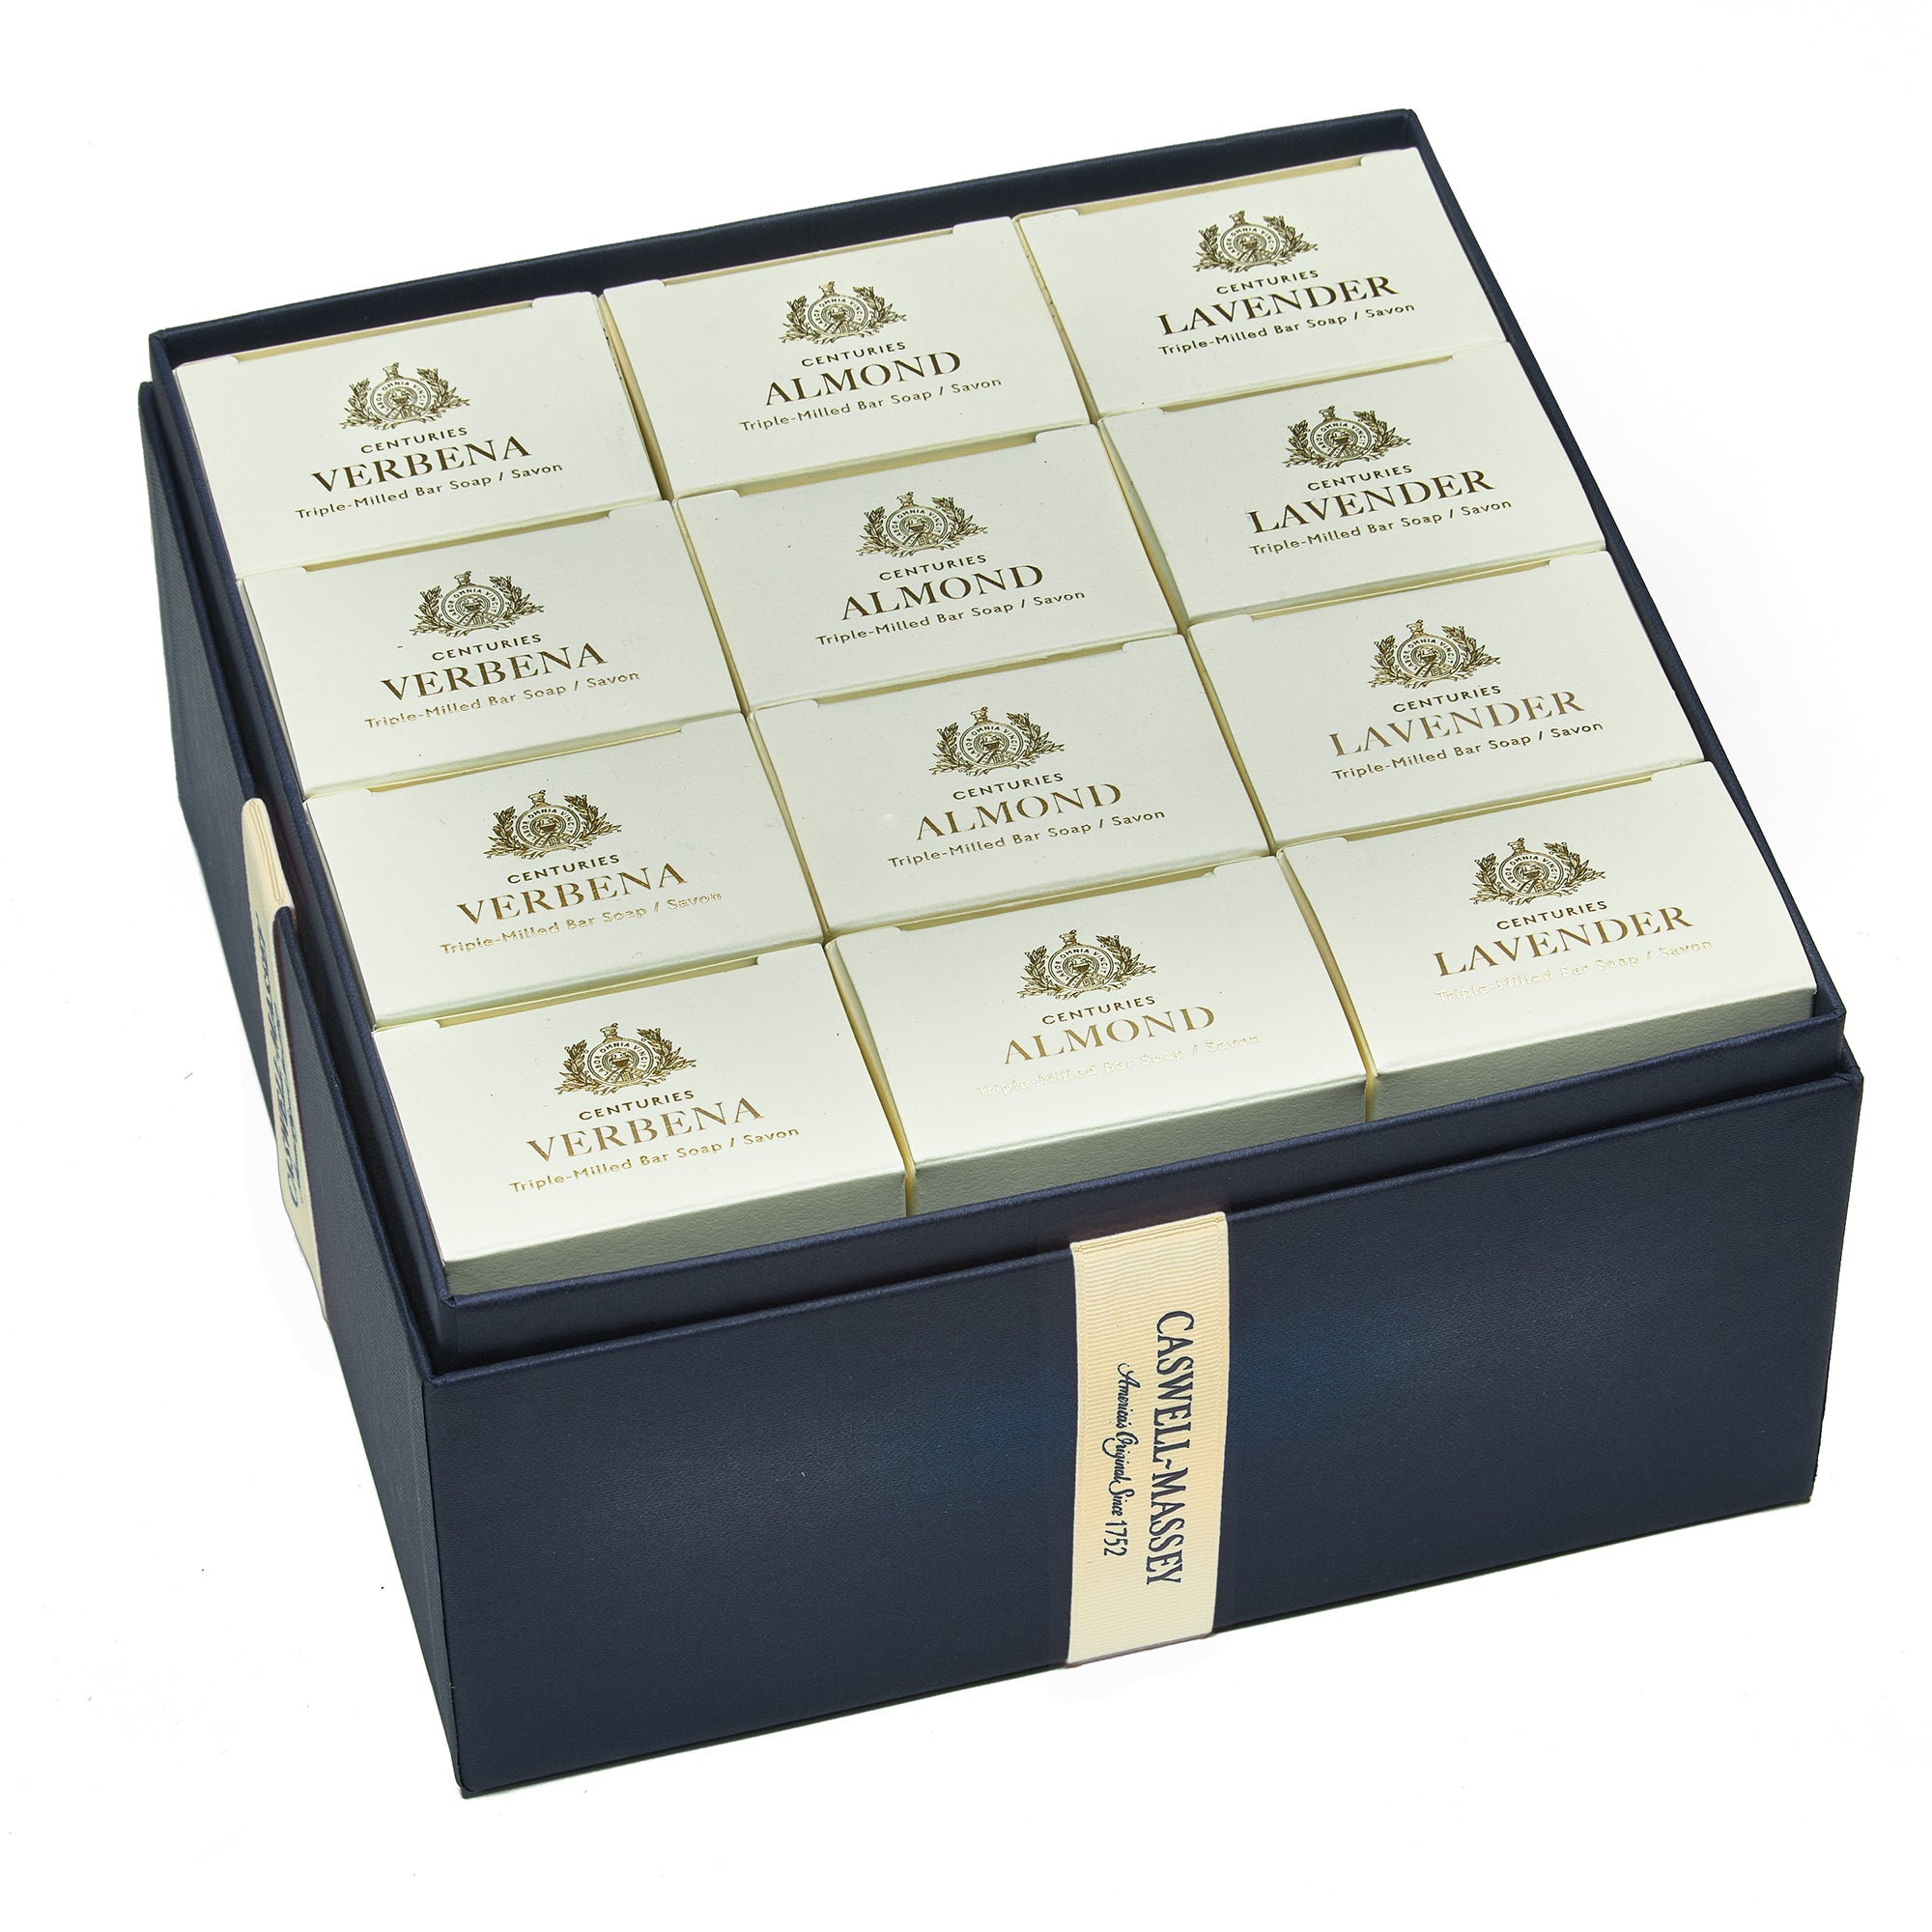 Centuries Signature Collection Year of Soap